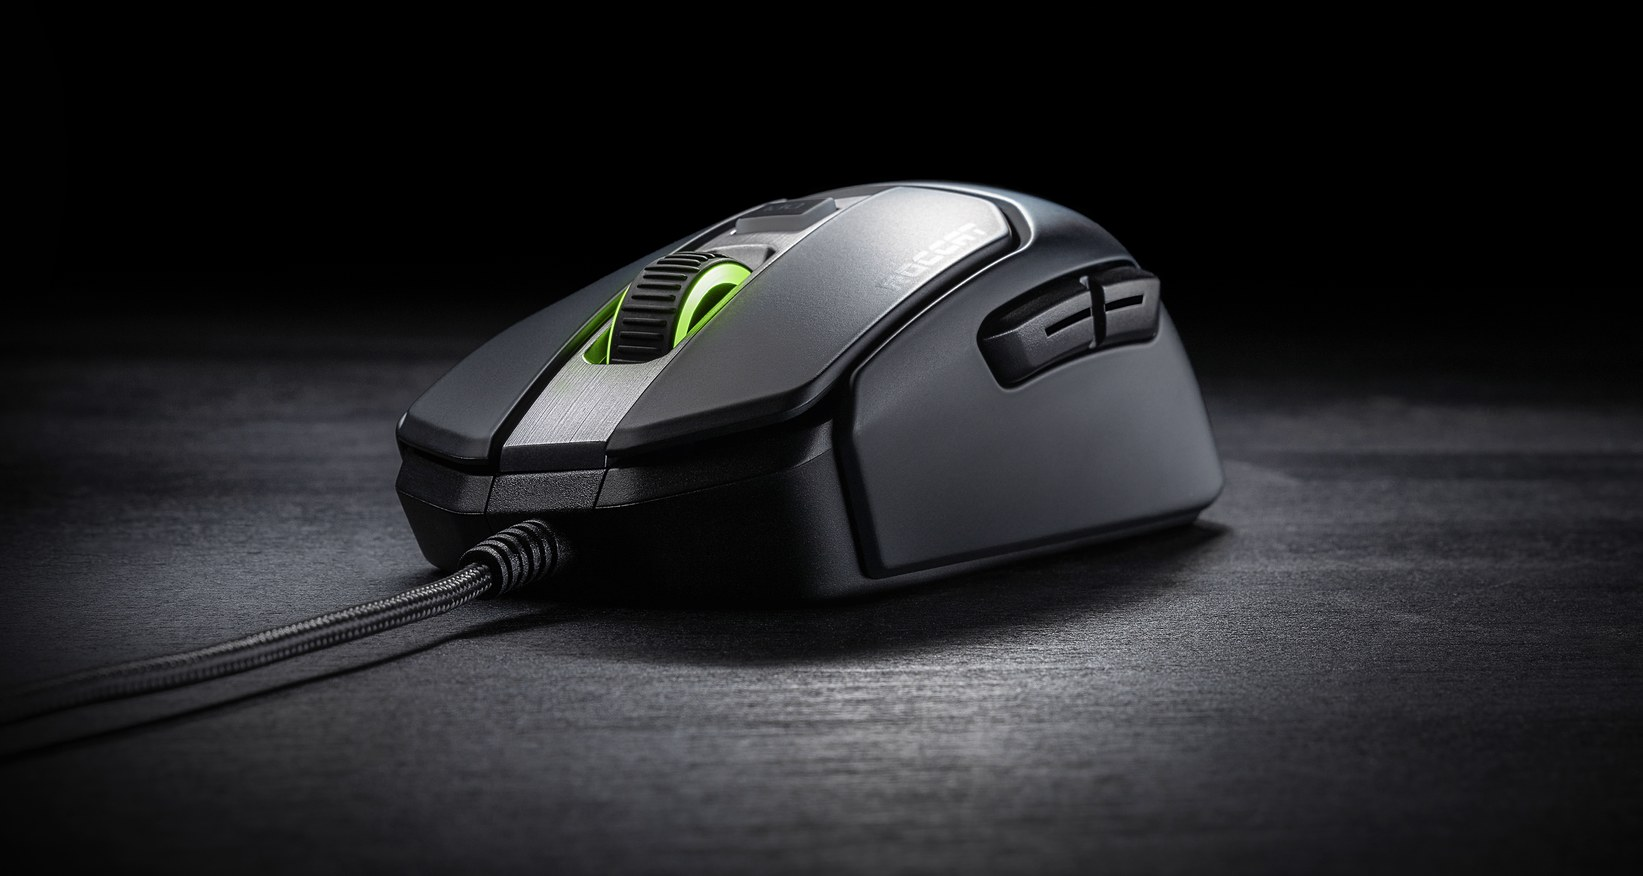 CPI vs DPI: How to improve your gaming mouse